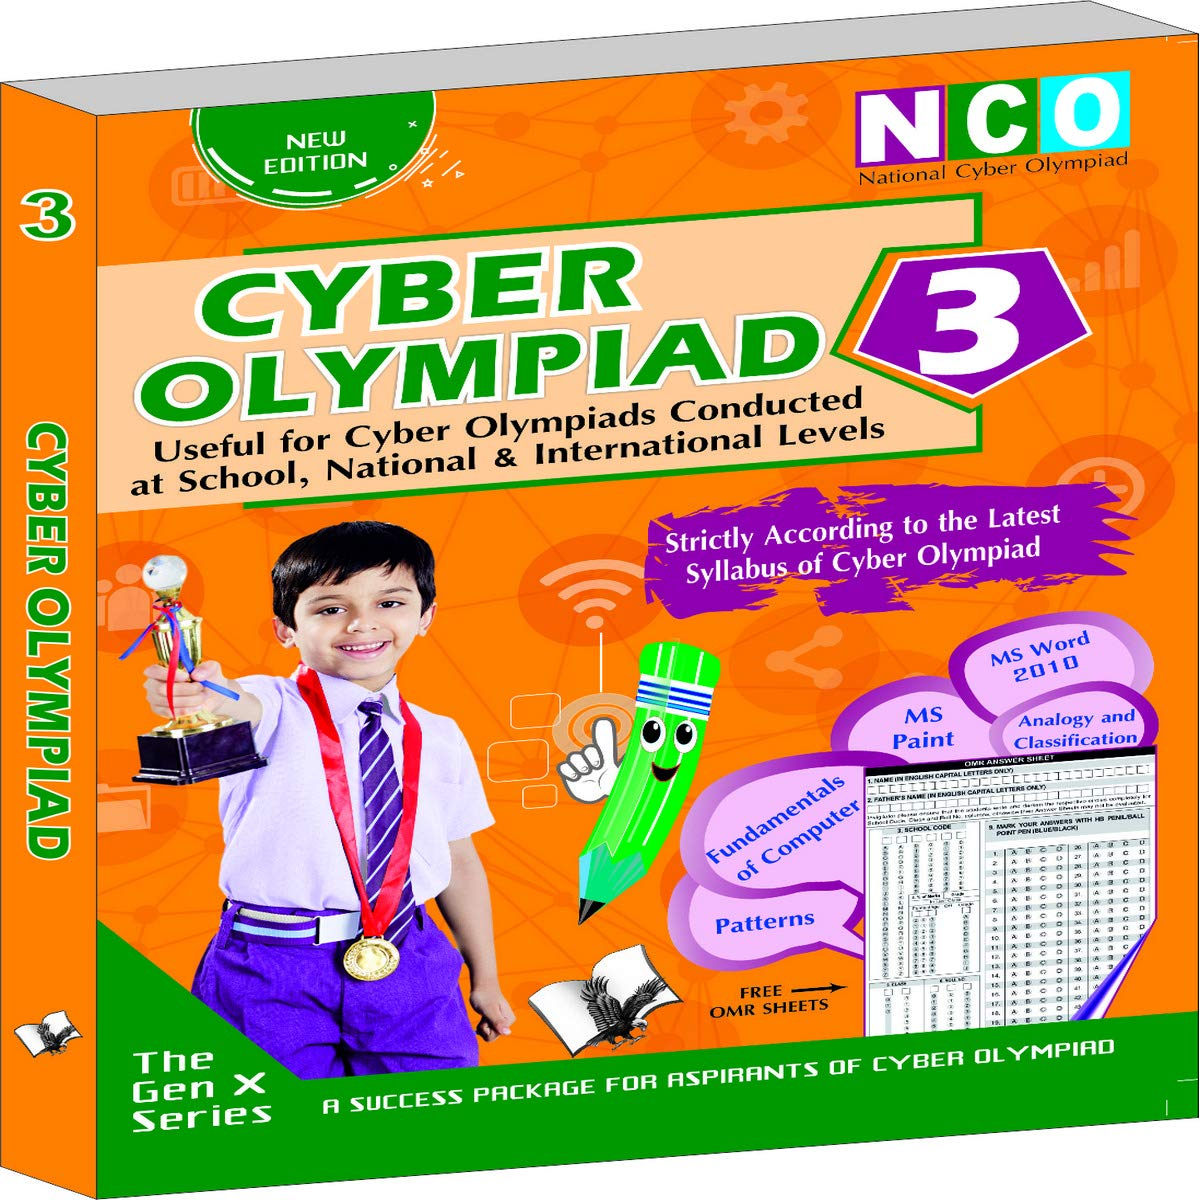 Cyber Olympiad 3 (Useful for Cyber Olympiads Conducted at School, National & International Levels)